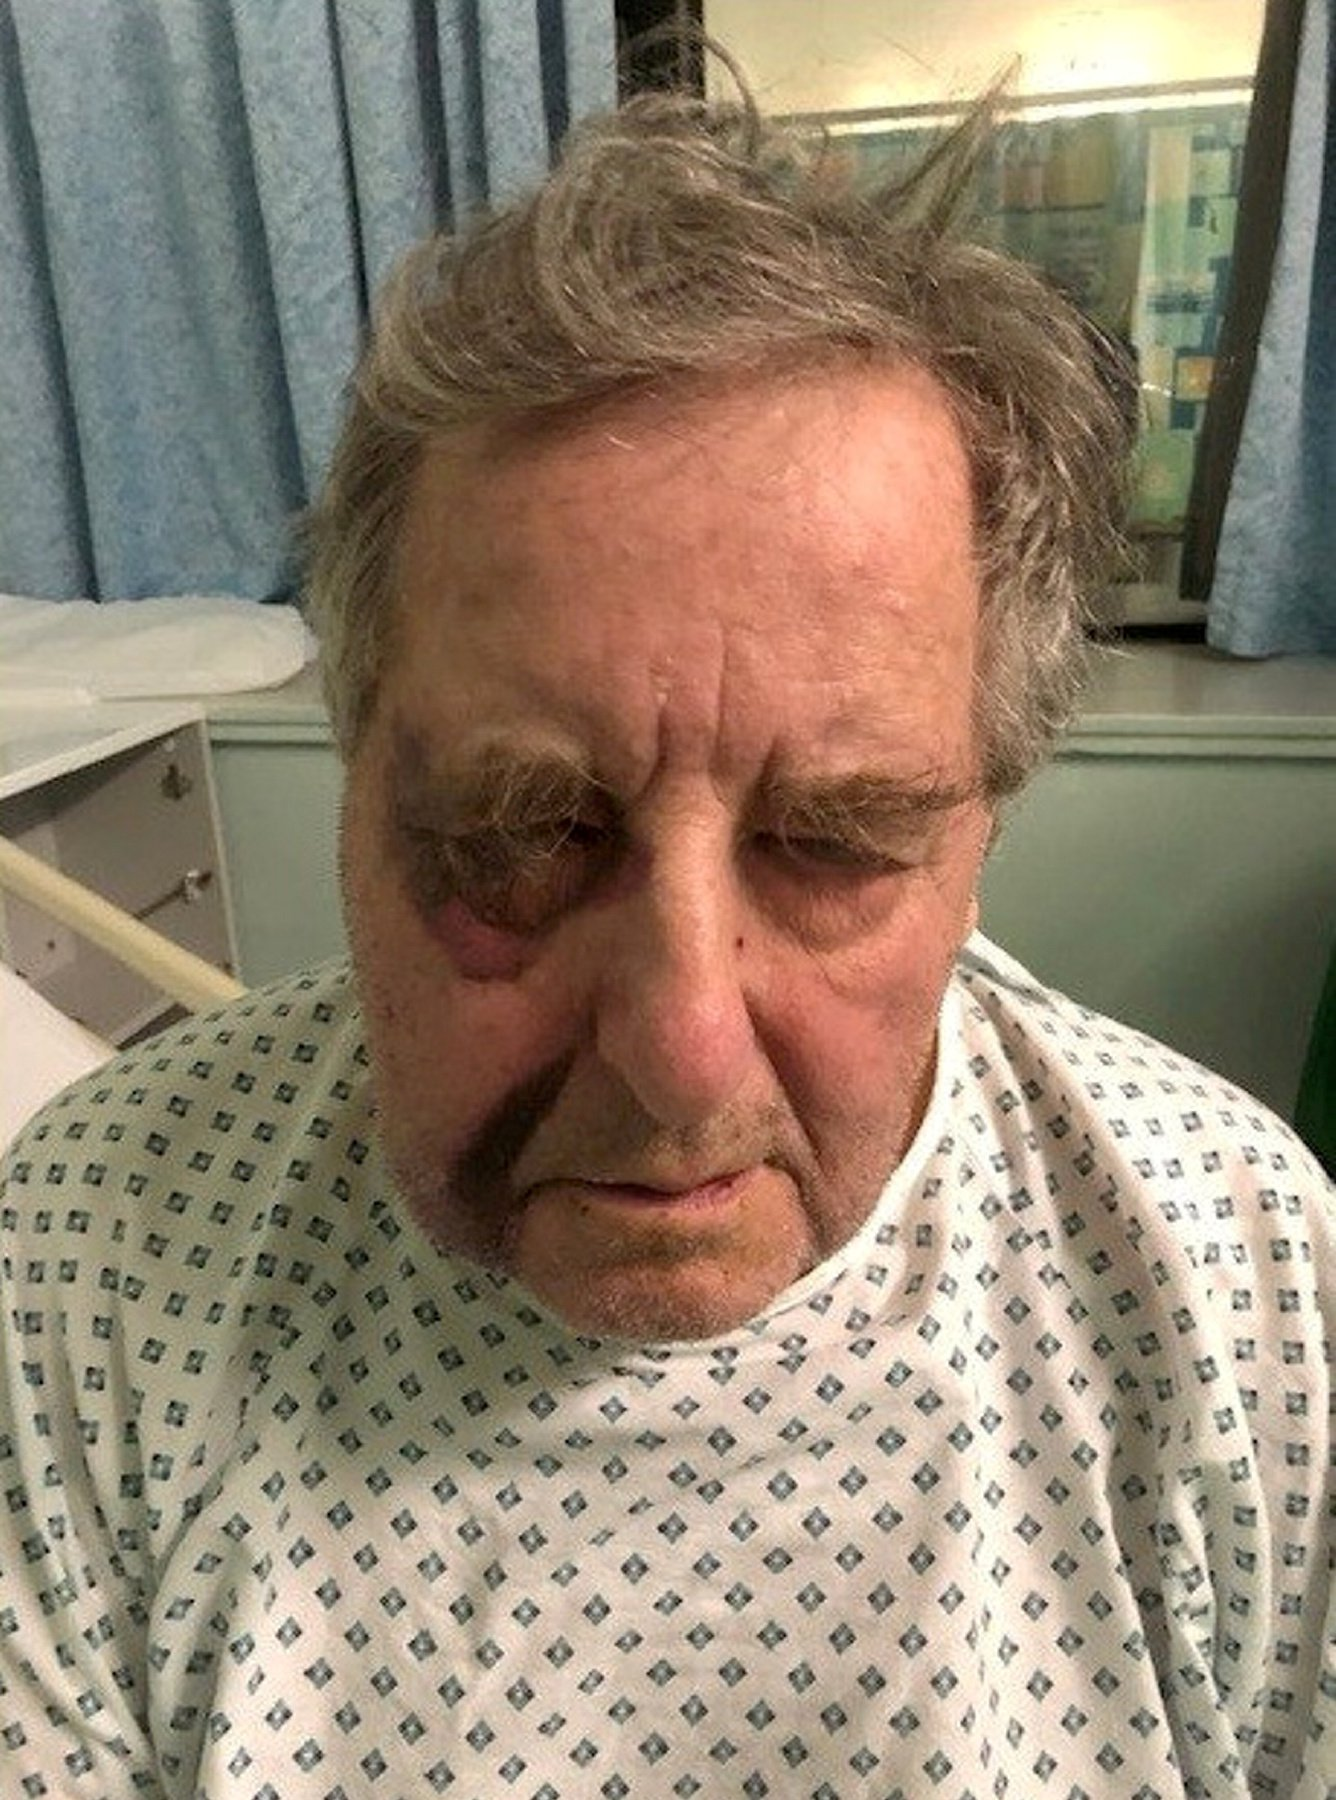 Officers have released this photograph of a pensioner?s injuries following an aggravated burglary in Stapleford on 12 February 2019. See SWNS story SWMDbatter; At around 8pm two males forced their way into the house in the Windsor Street area and threatened the 78-year-old victim with a knife, before ransacking the house and taking a quantity of cash and a bank card. During the incident, the man was also hit in the face and lost consciousness. He wasn?t found until the next day, when his older sister visited him, and is still receiving medical treatment, although his injuries are not thought to be life-threatening or life-altering.